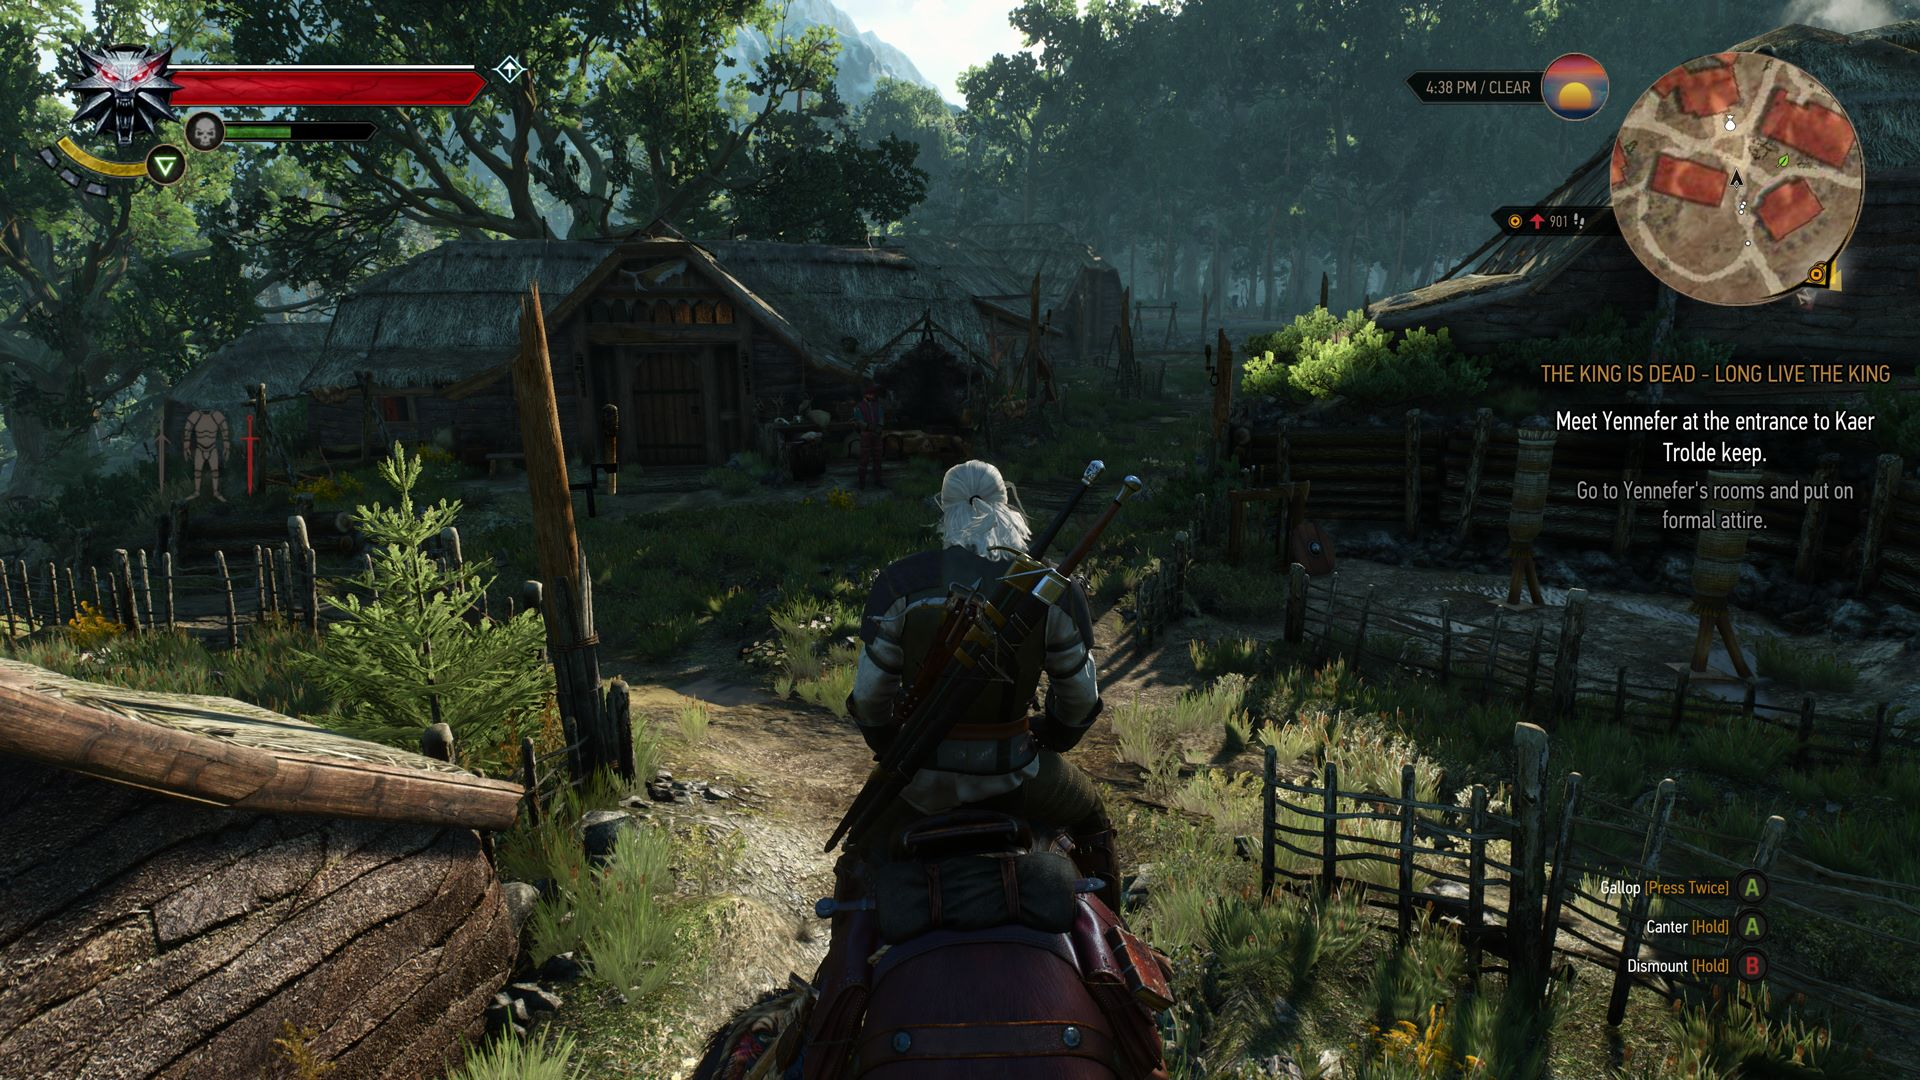 The Witcher 3 Is A Huge Open World With No Loading Times